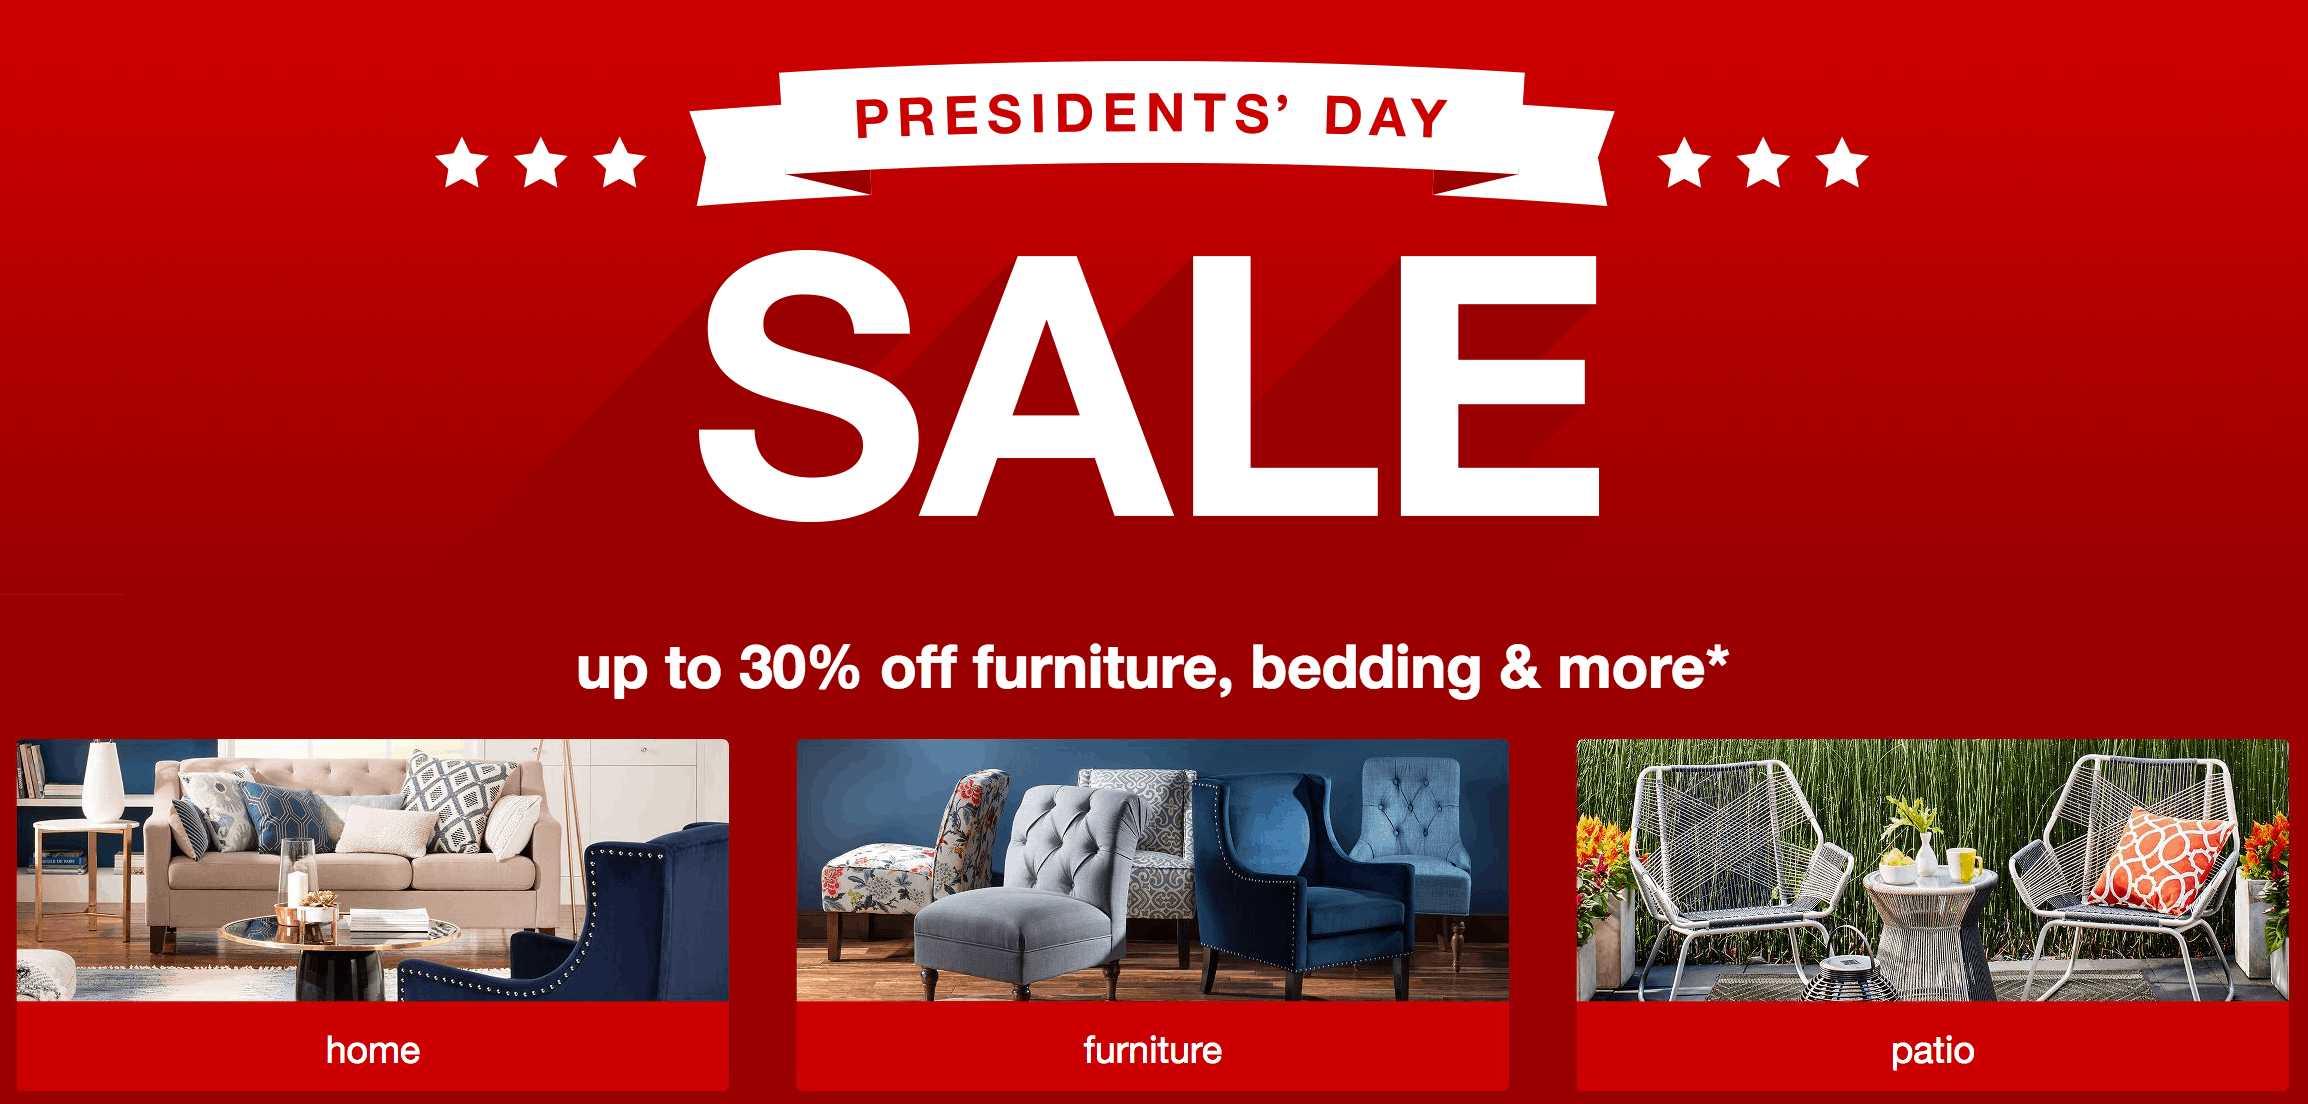 The Bullseye just announced their annual President's Day Sale and they're all geared towards home goods, bedroom essentials and bath accessories! Shoppers can enjoy up to 30% off all home items and and extra 15% off all indoor, outdoor furniture and rugs.